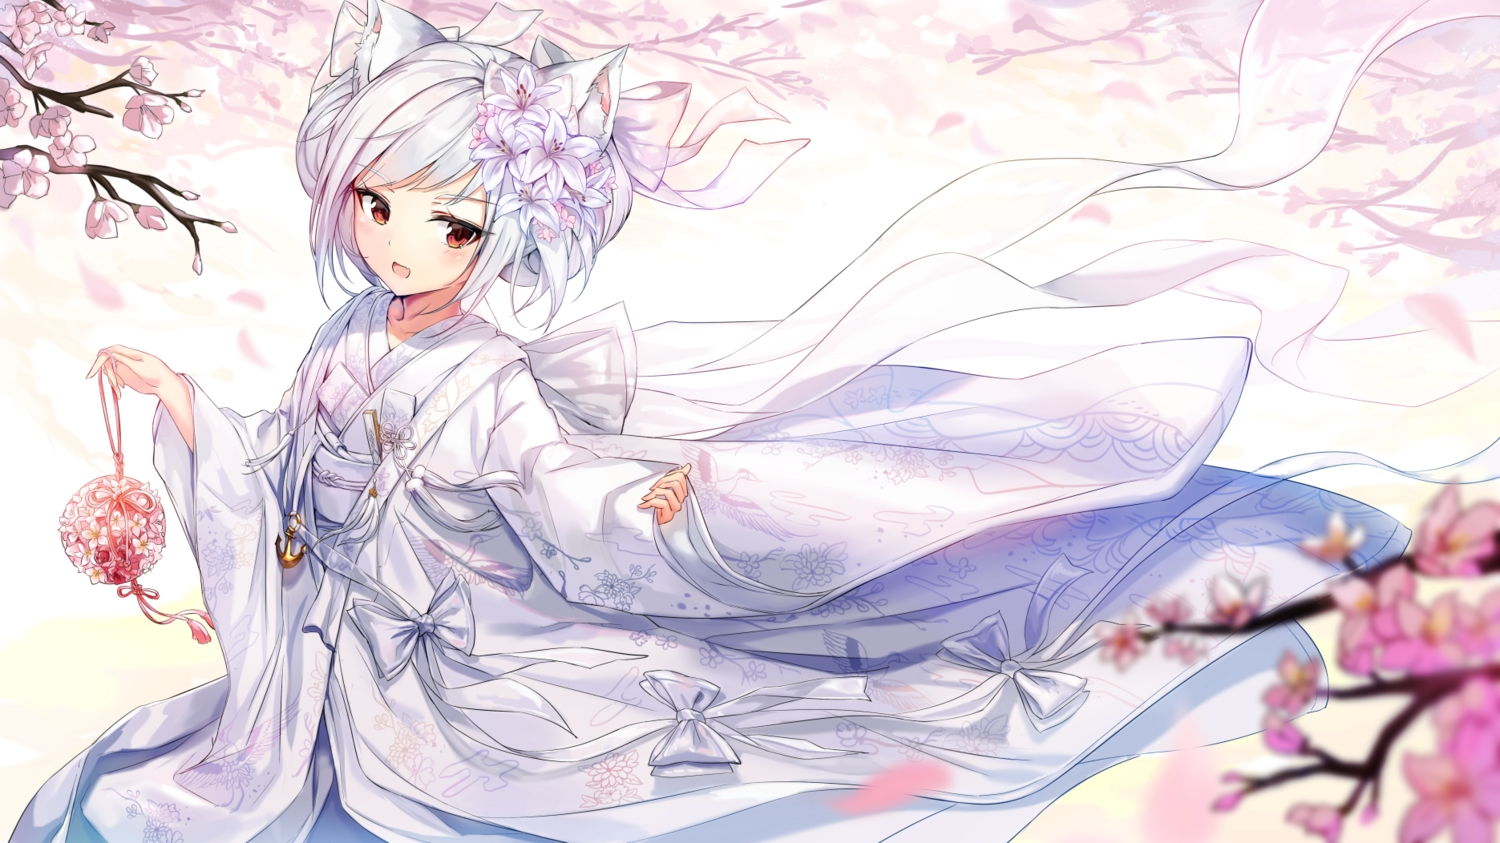 aliasing animal_ears anthropomorphism azur_lane bow catgirl cherry_blossoms fang flowers japanese_clothes kimono pdxen red_eyes ribbons wedding_attire white_hair yukikaze_(azur_lane)